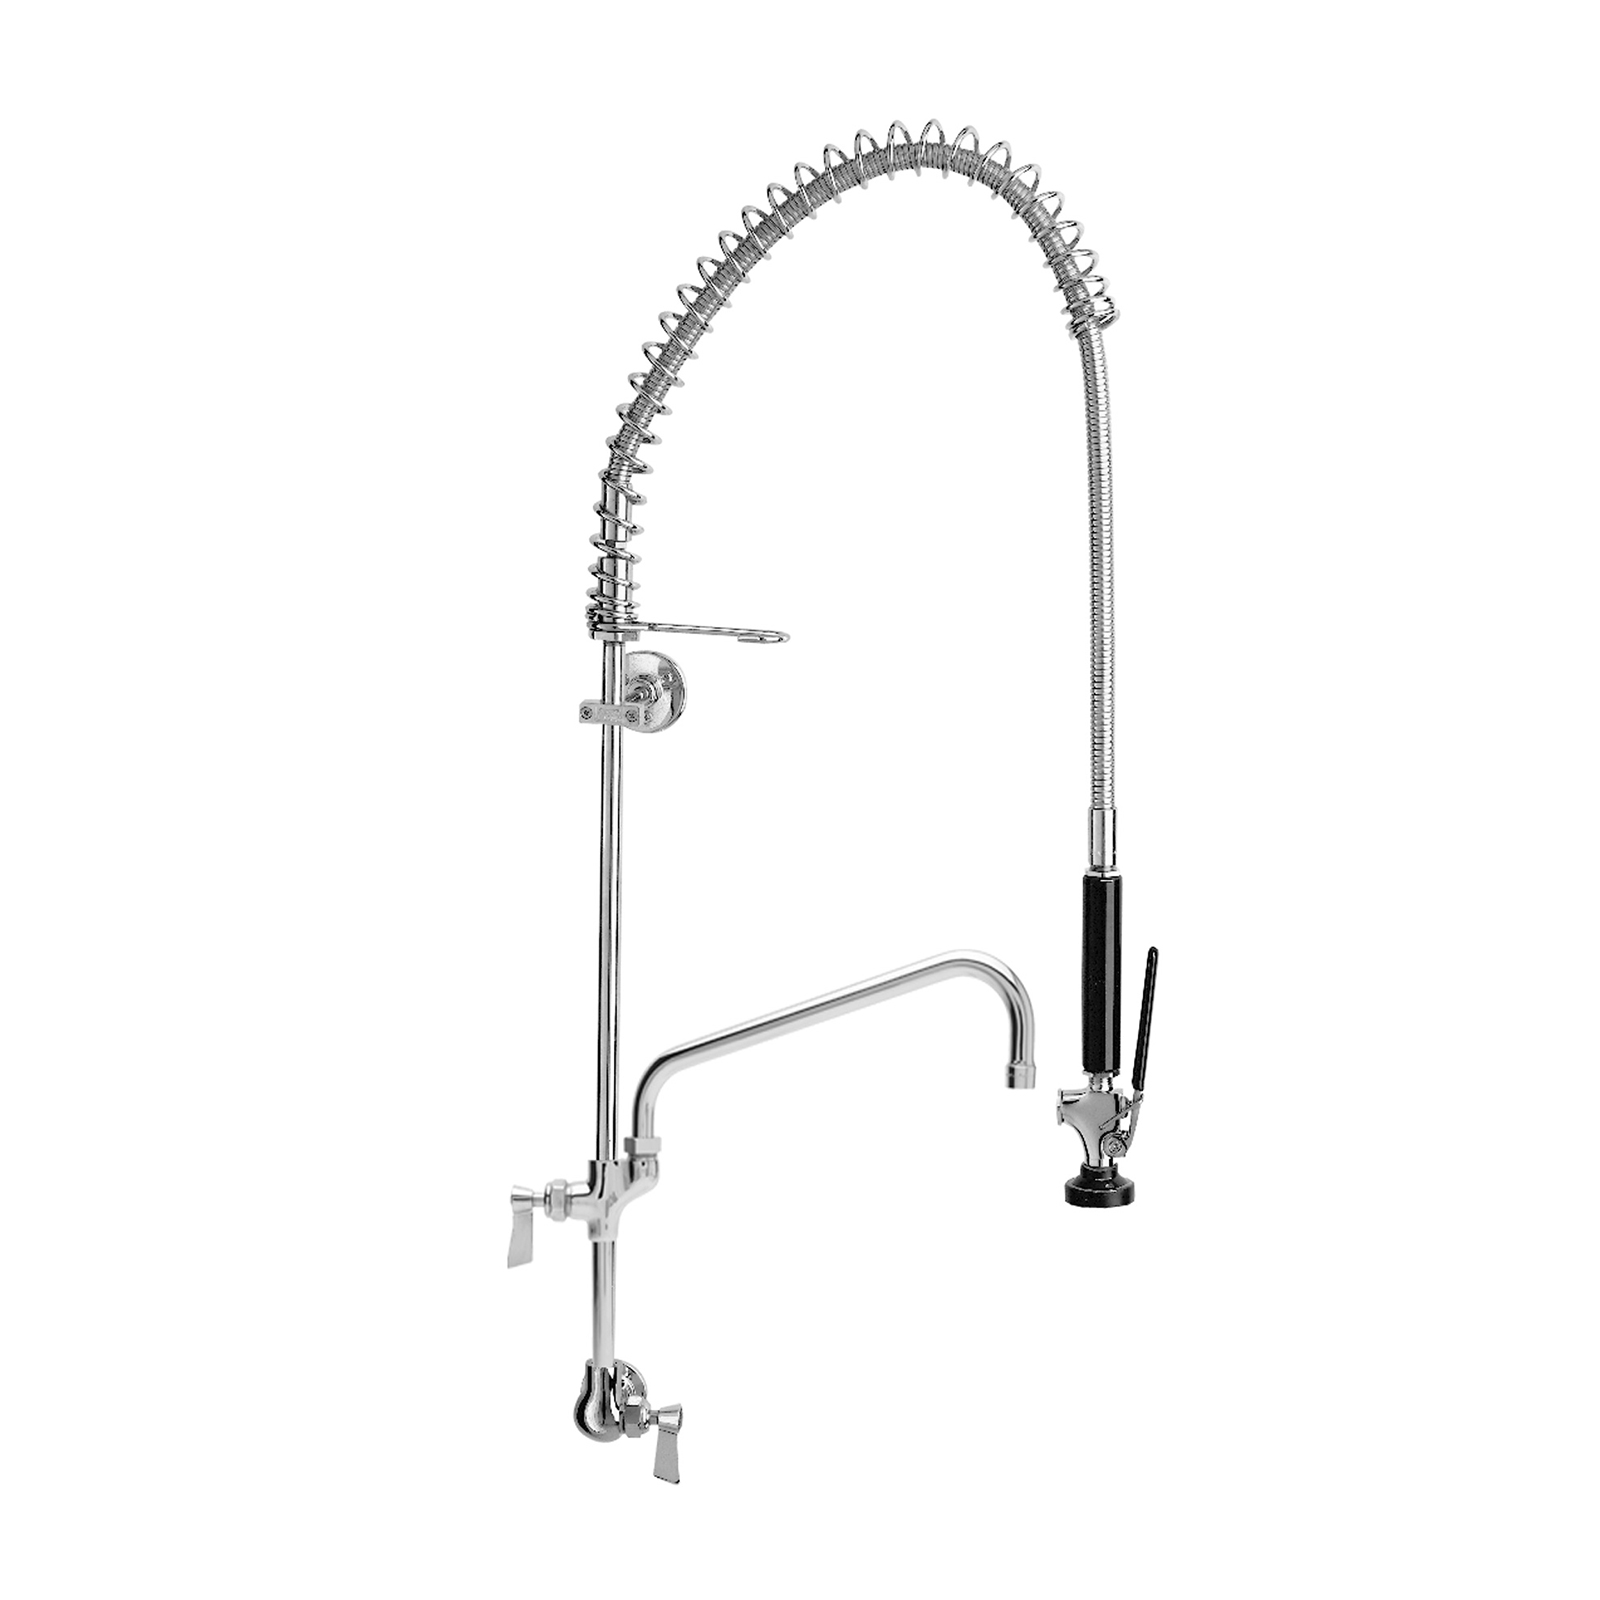 Fisher 34592 pre-rinse faucet assembly, with add on faucet